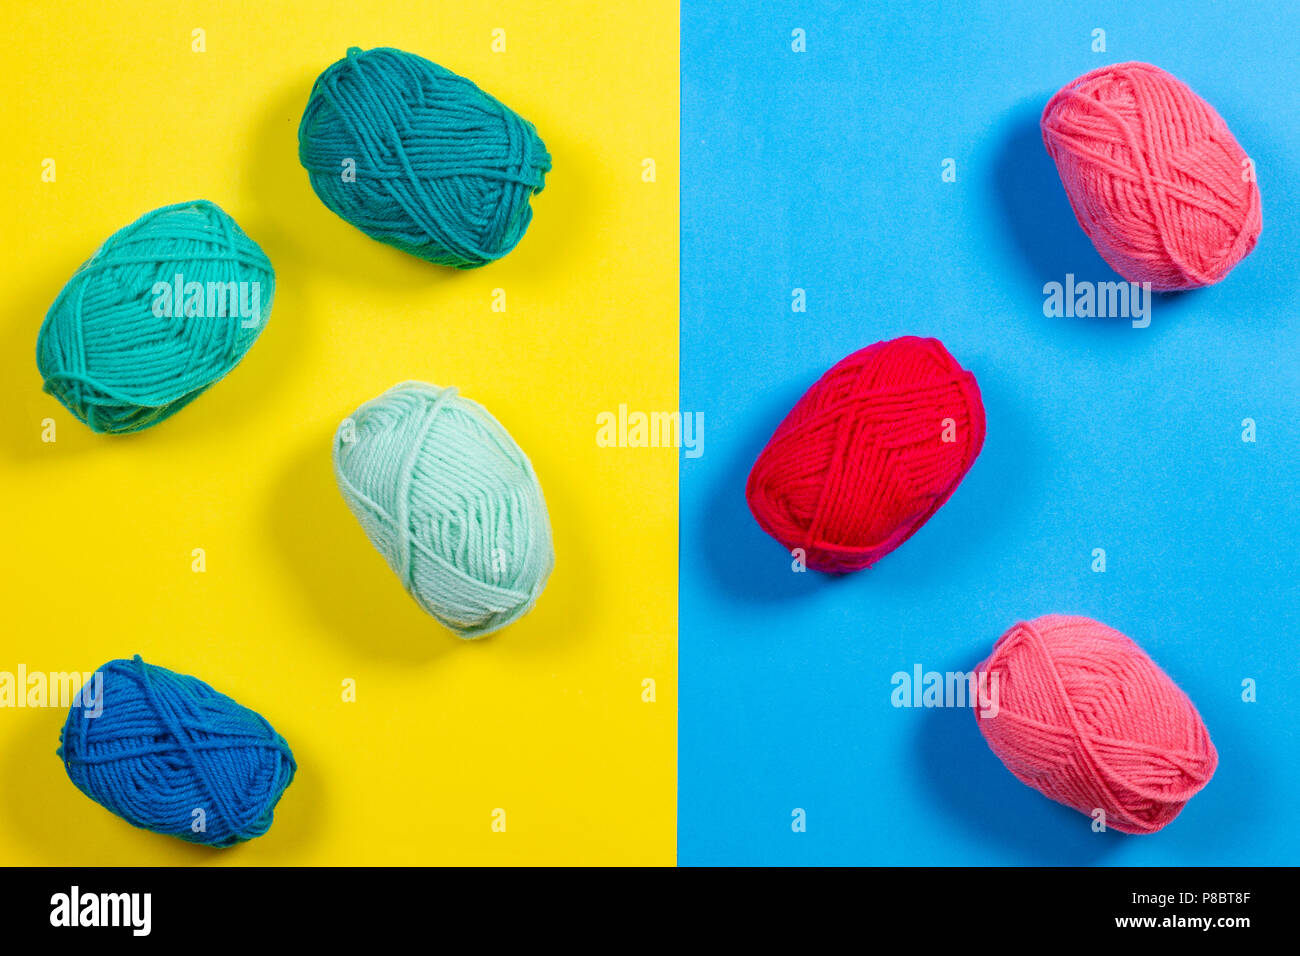 Colorful yarn for knitting on yellow and blue background. - Stock Image